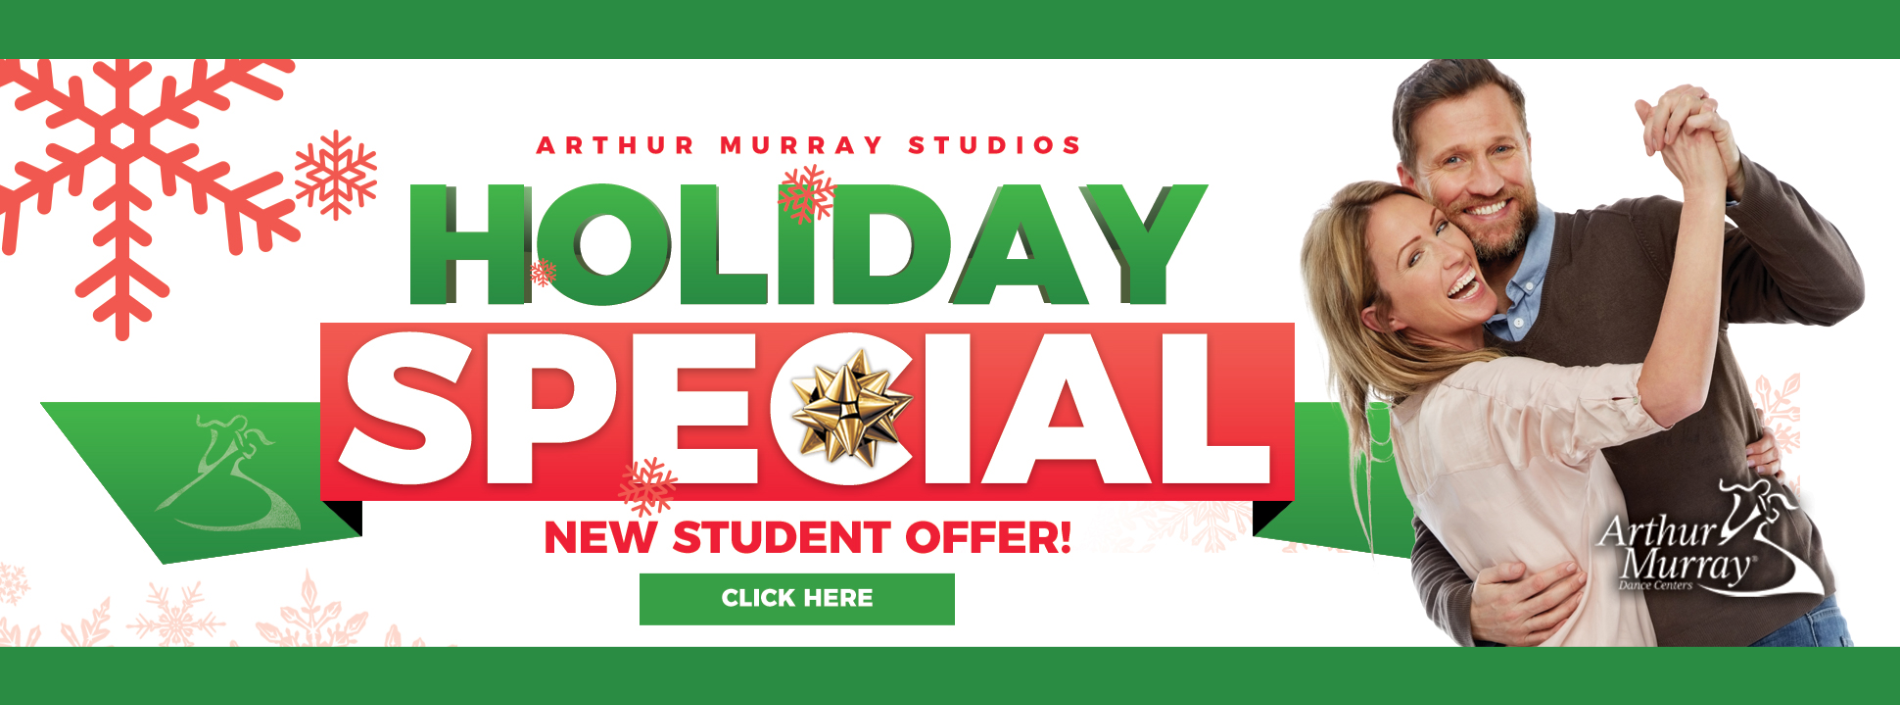 Holiday-Special-New-Student-Offer